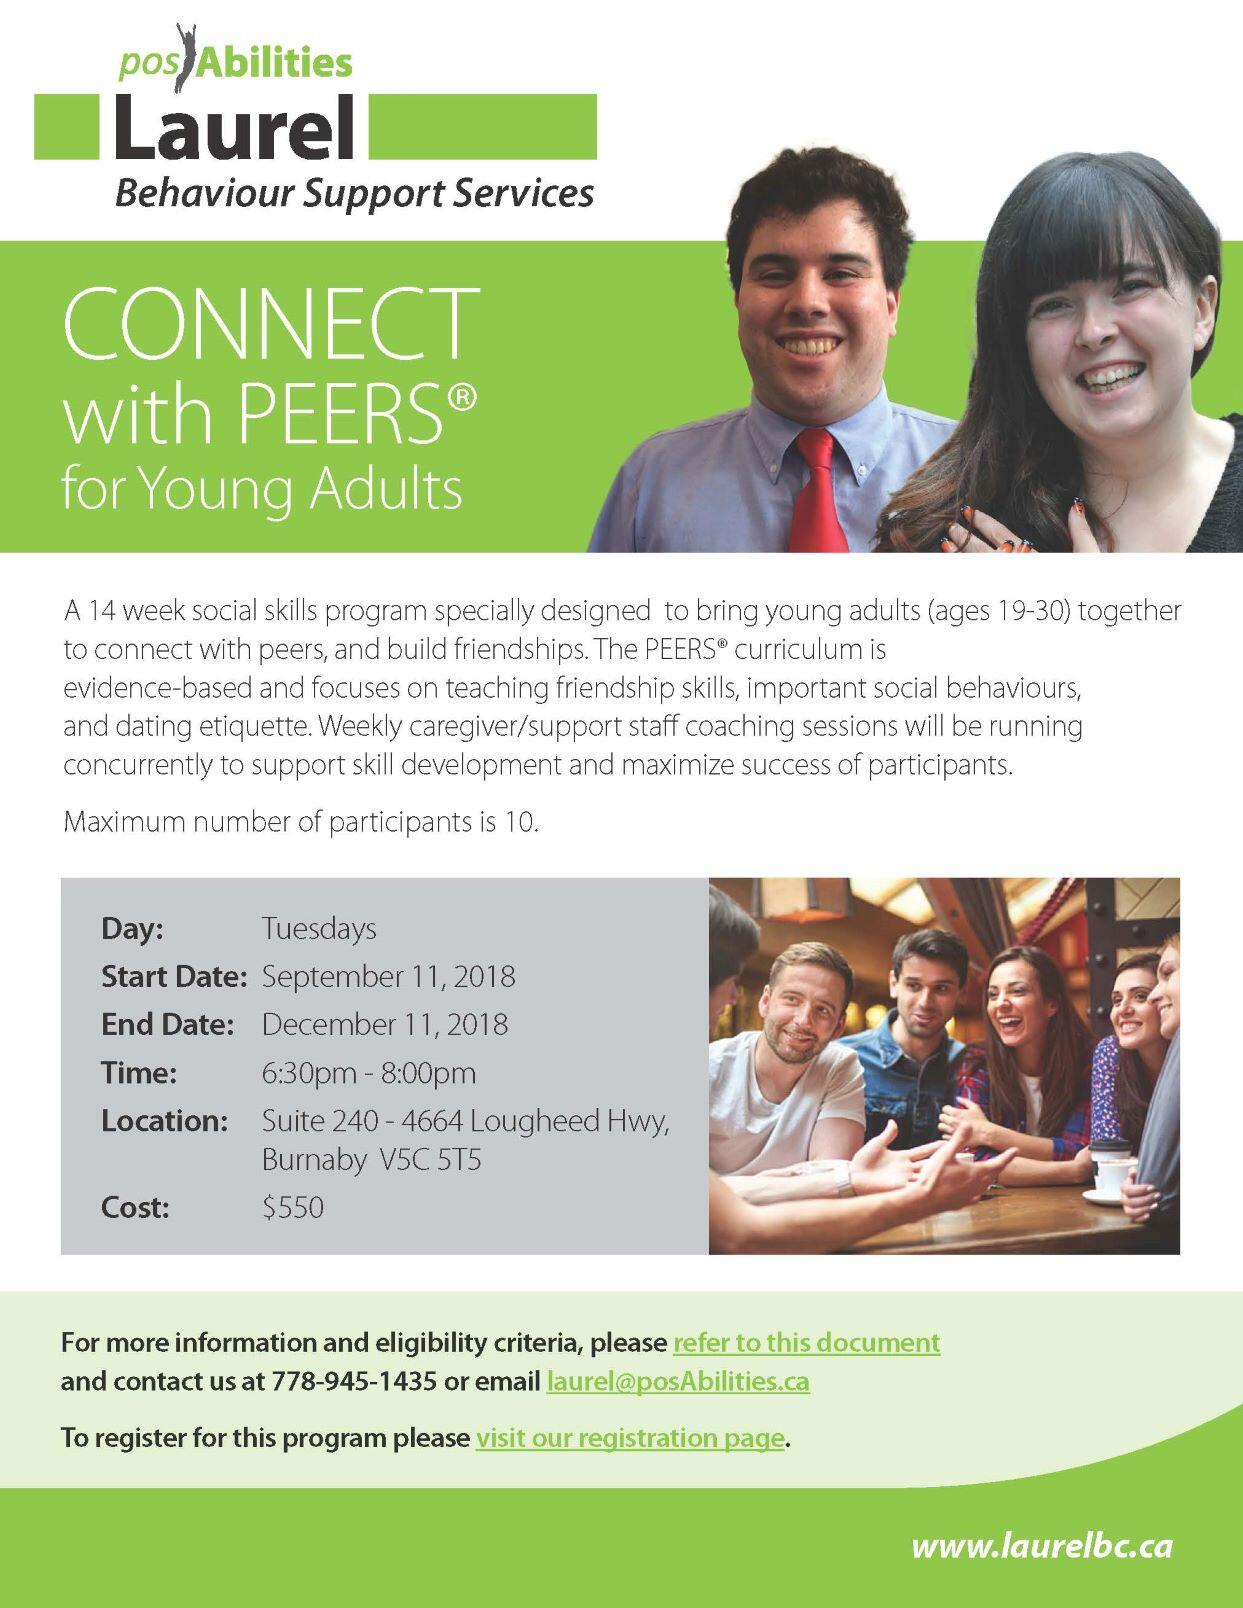 Connect with PEERS(r) for Young Adults (19-30)